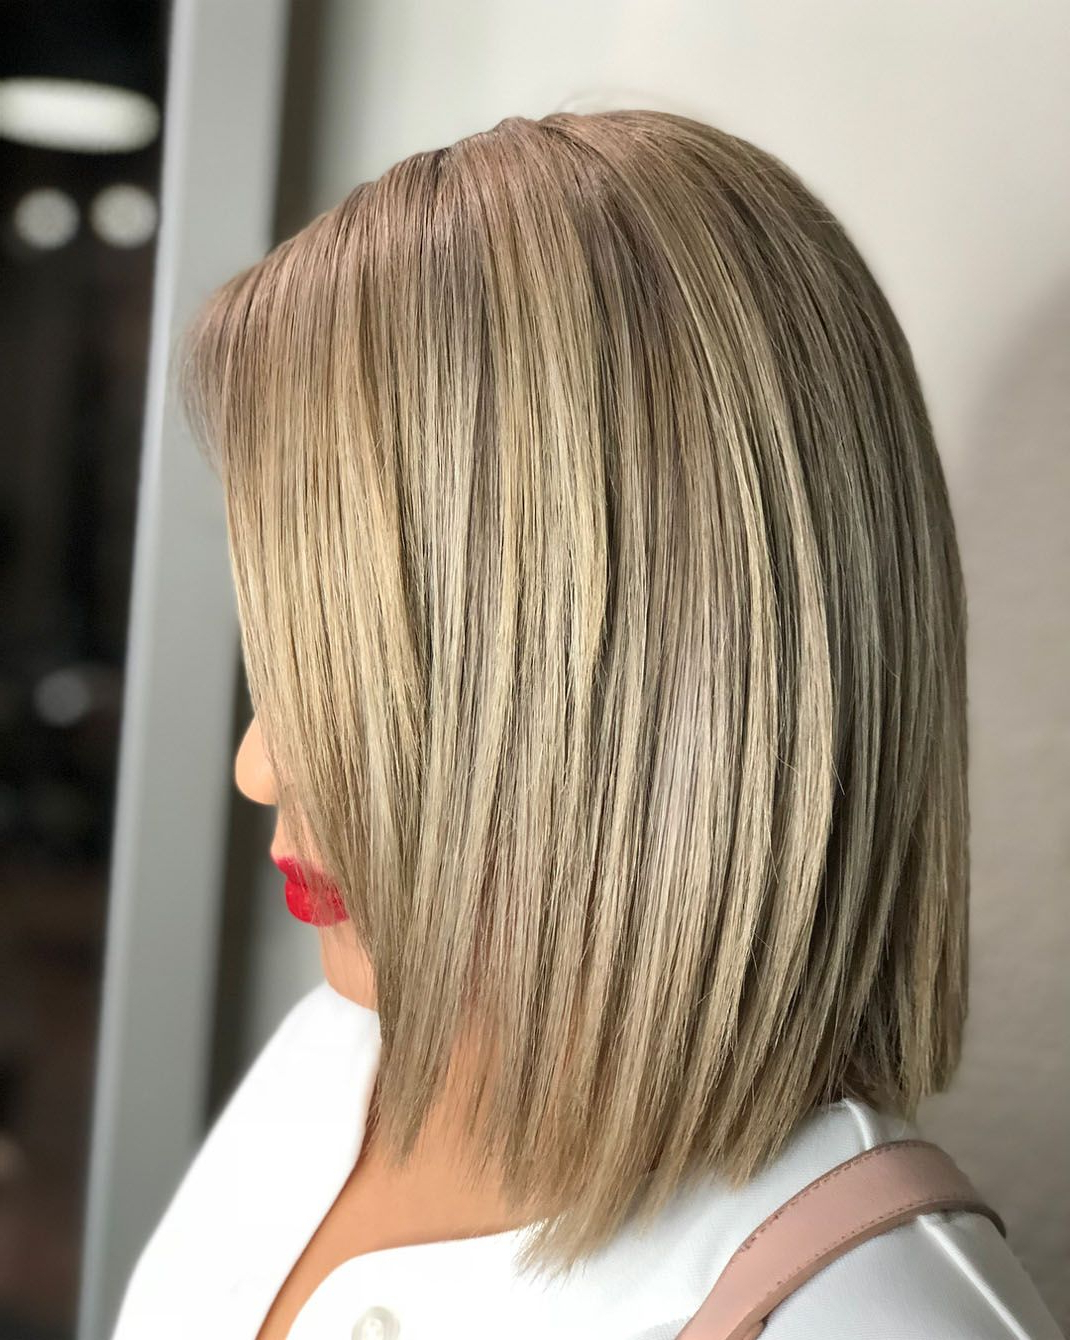 19 Best Spherical Bob Haircuts For Blonde Girls | Hair Intended For Simple And Stylish Bob Haircuts (Gallery 12 of 20)